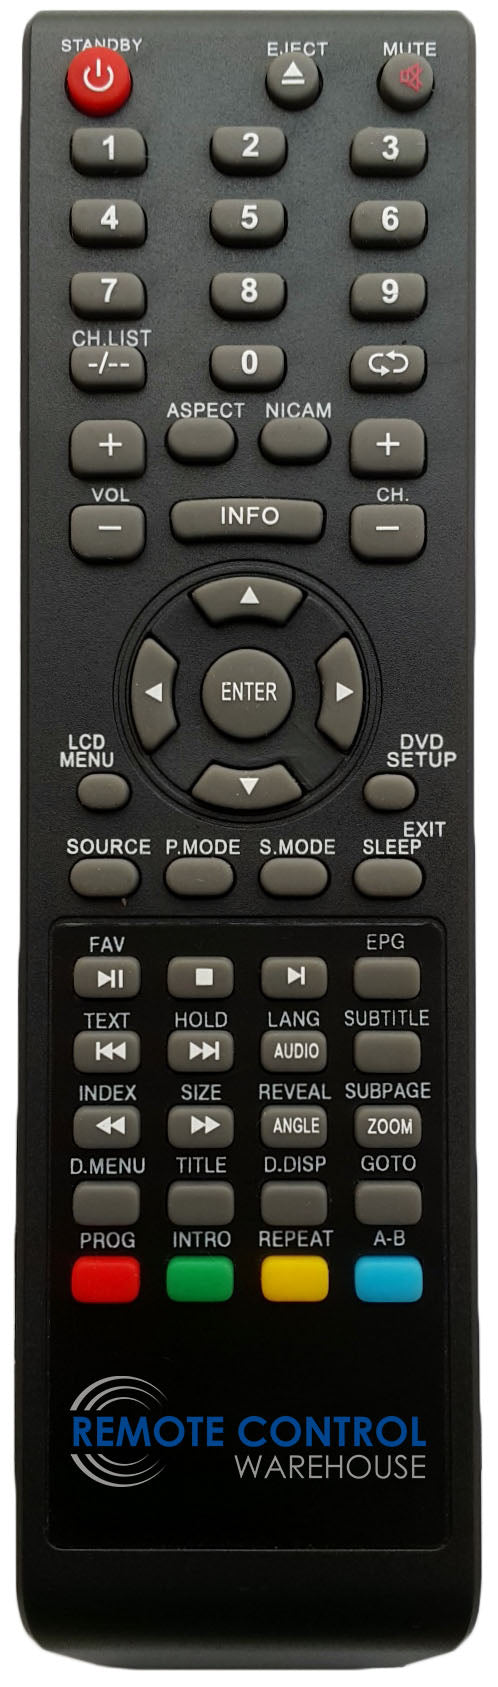 GRUNDIG REPLACEMENT REMOTE CONTROL - GLCD1906HDV LCD TV - Remote Control Warehouse